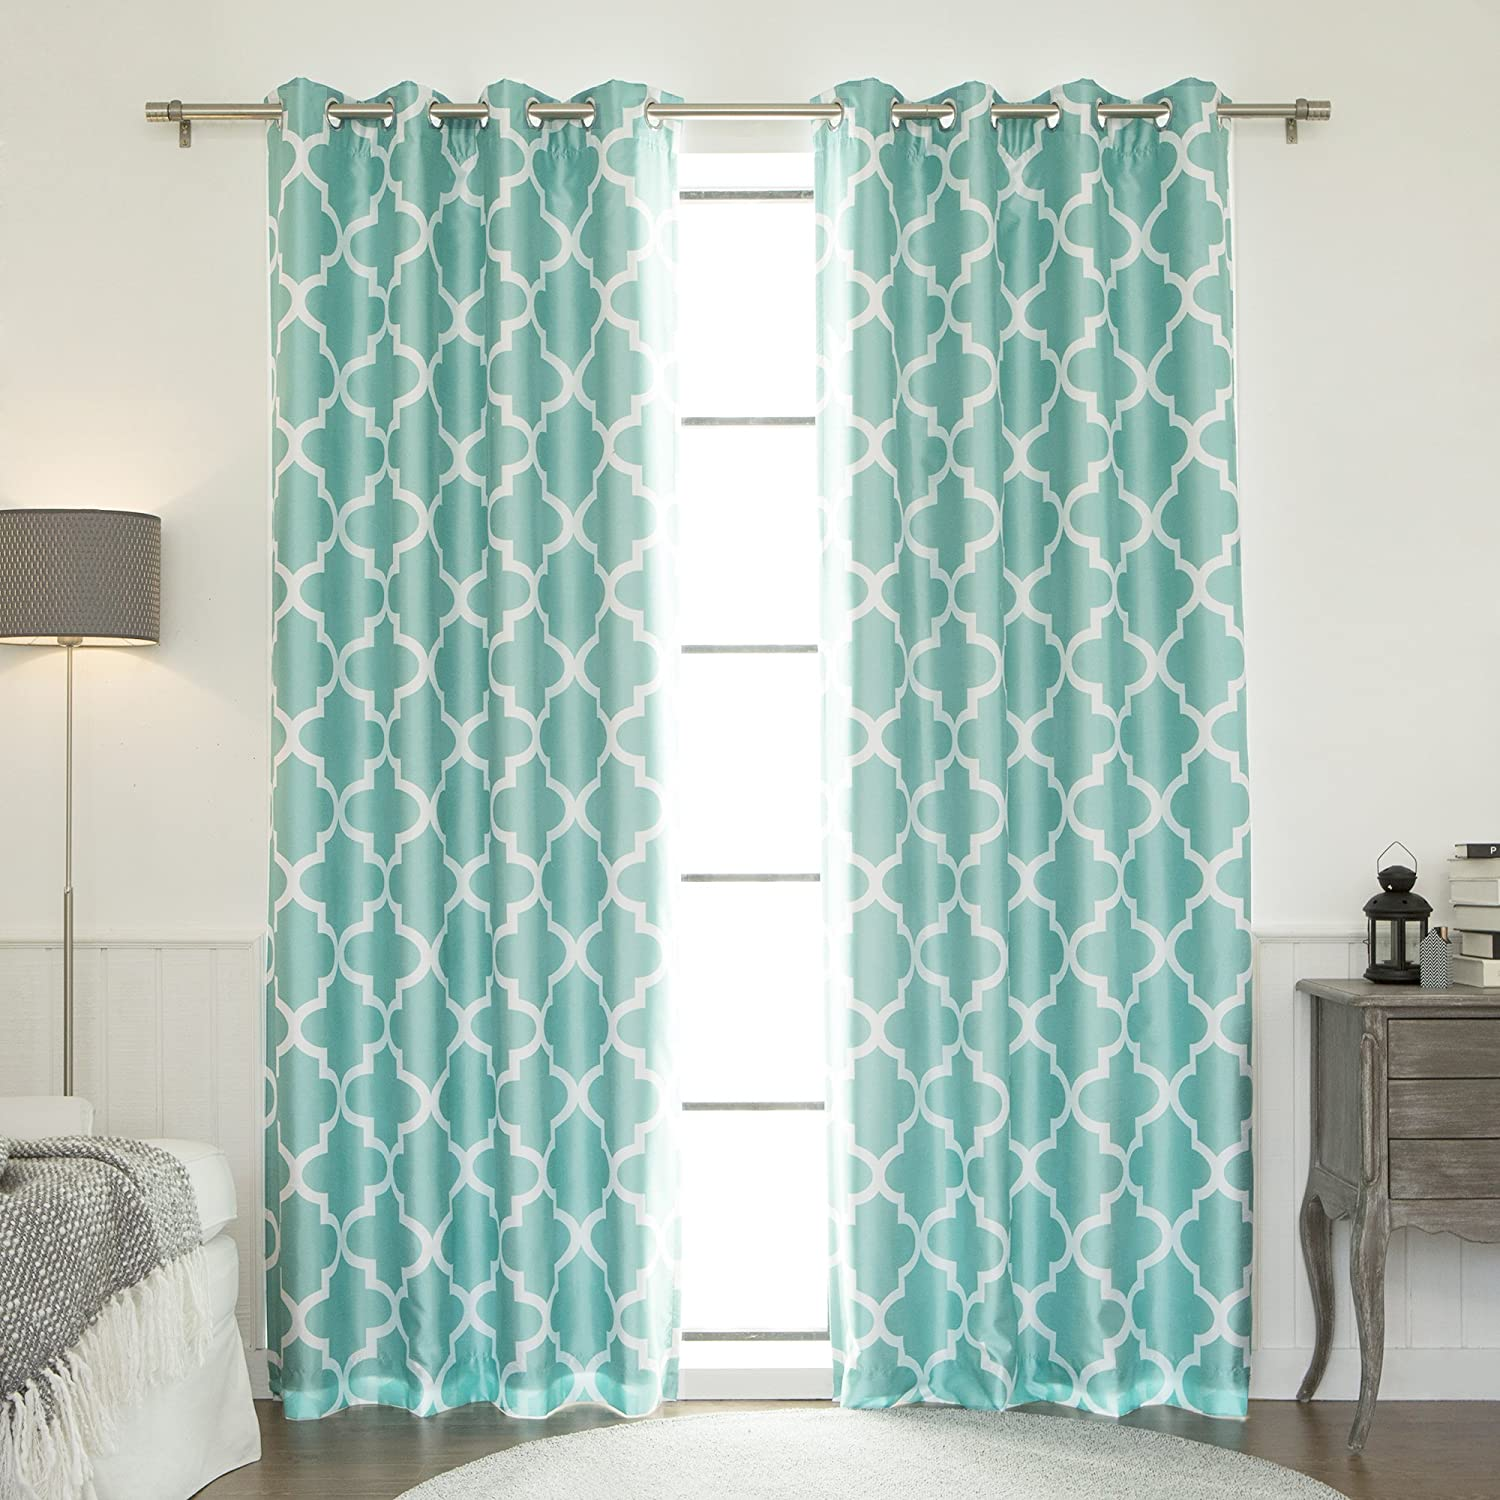 """Best Home Fashion Moroccan Faux Silk Blackout Curtain - Stainless Steel Nickel Grommet Top - Sky Blue - 52"""" W X 84"""" L - (1 Panel)"""